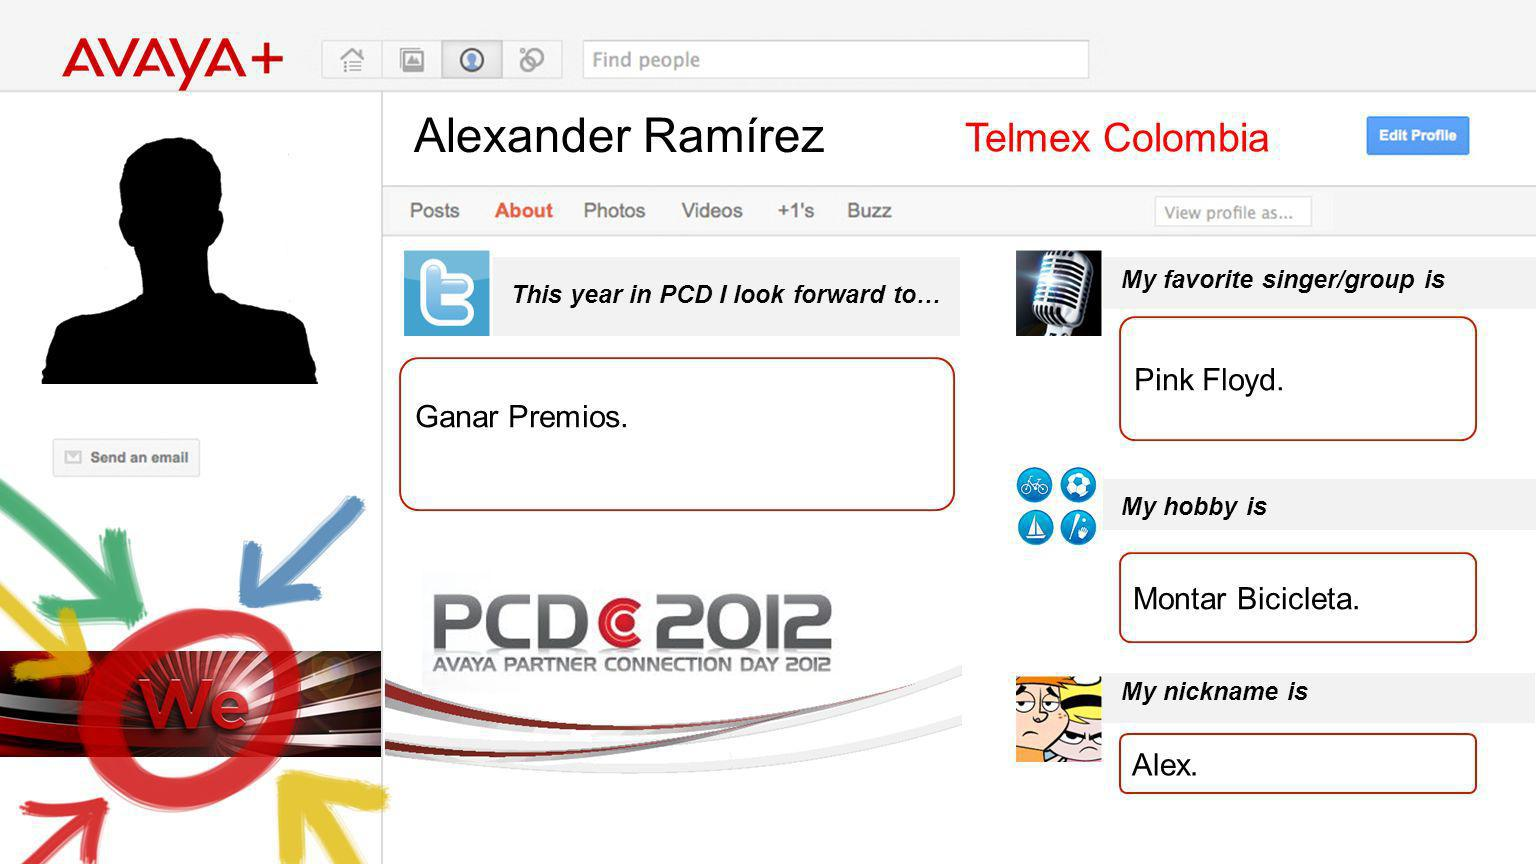 Alexander Ramírez This year in PCD I look forward to… Telmex Colombia Ganar Premios.